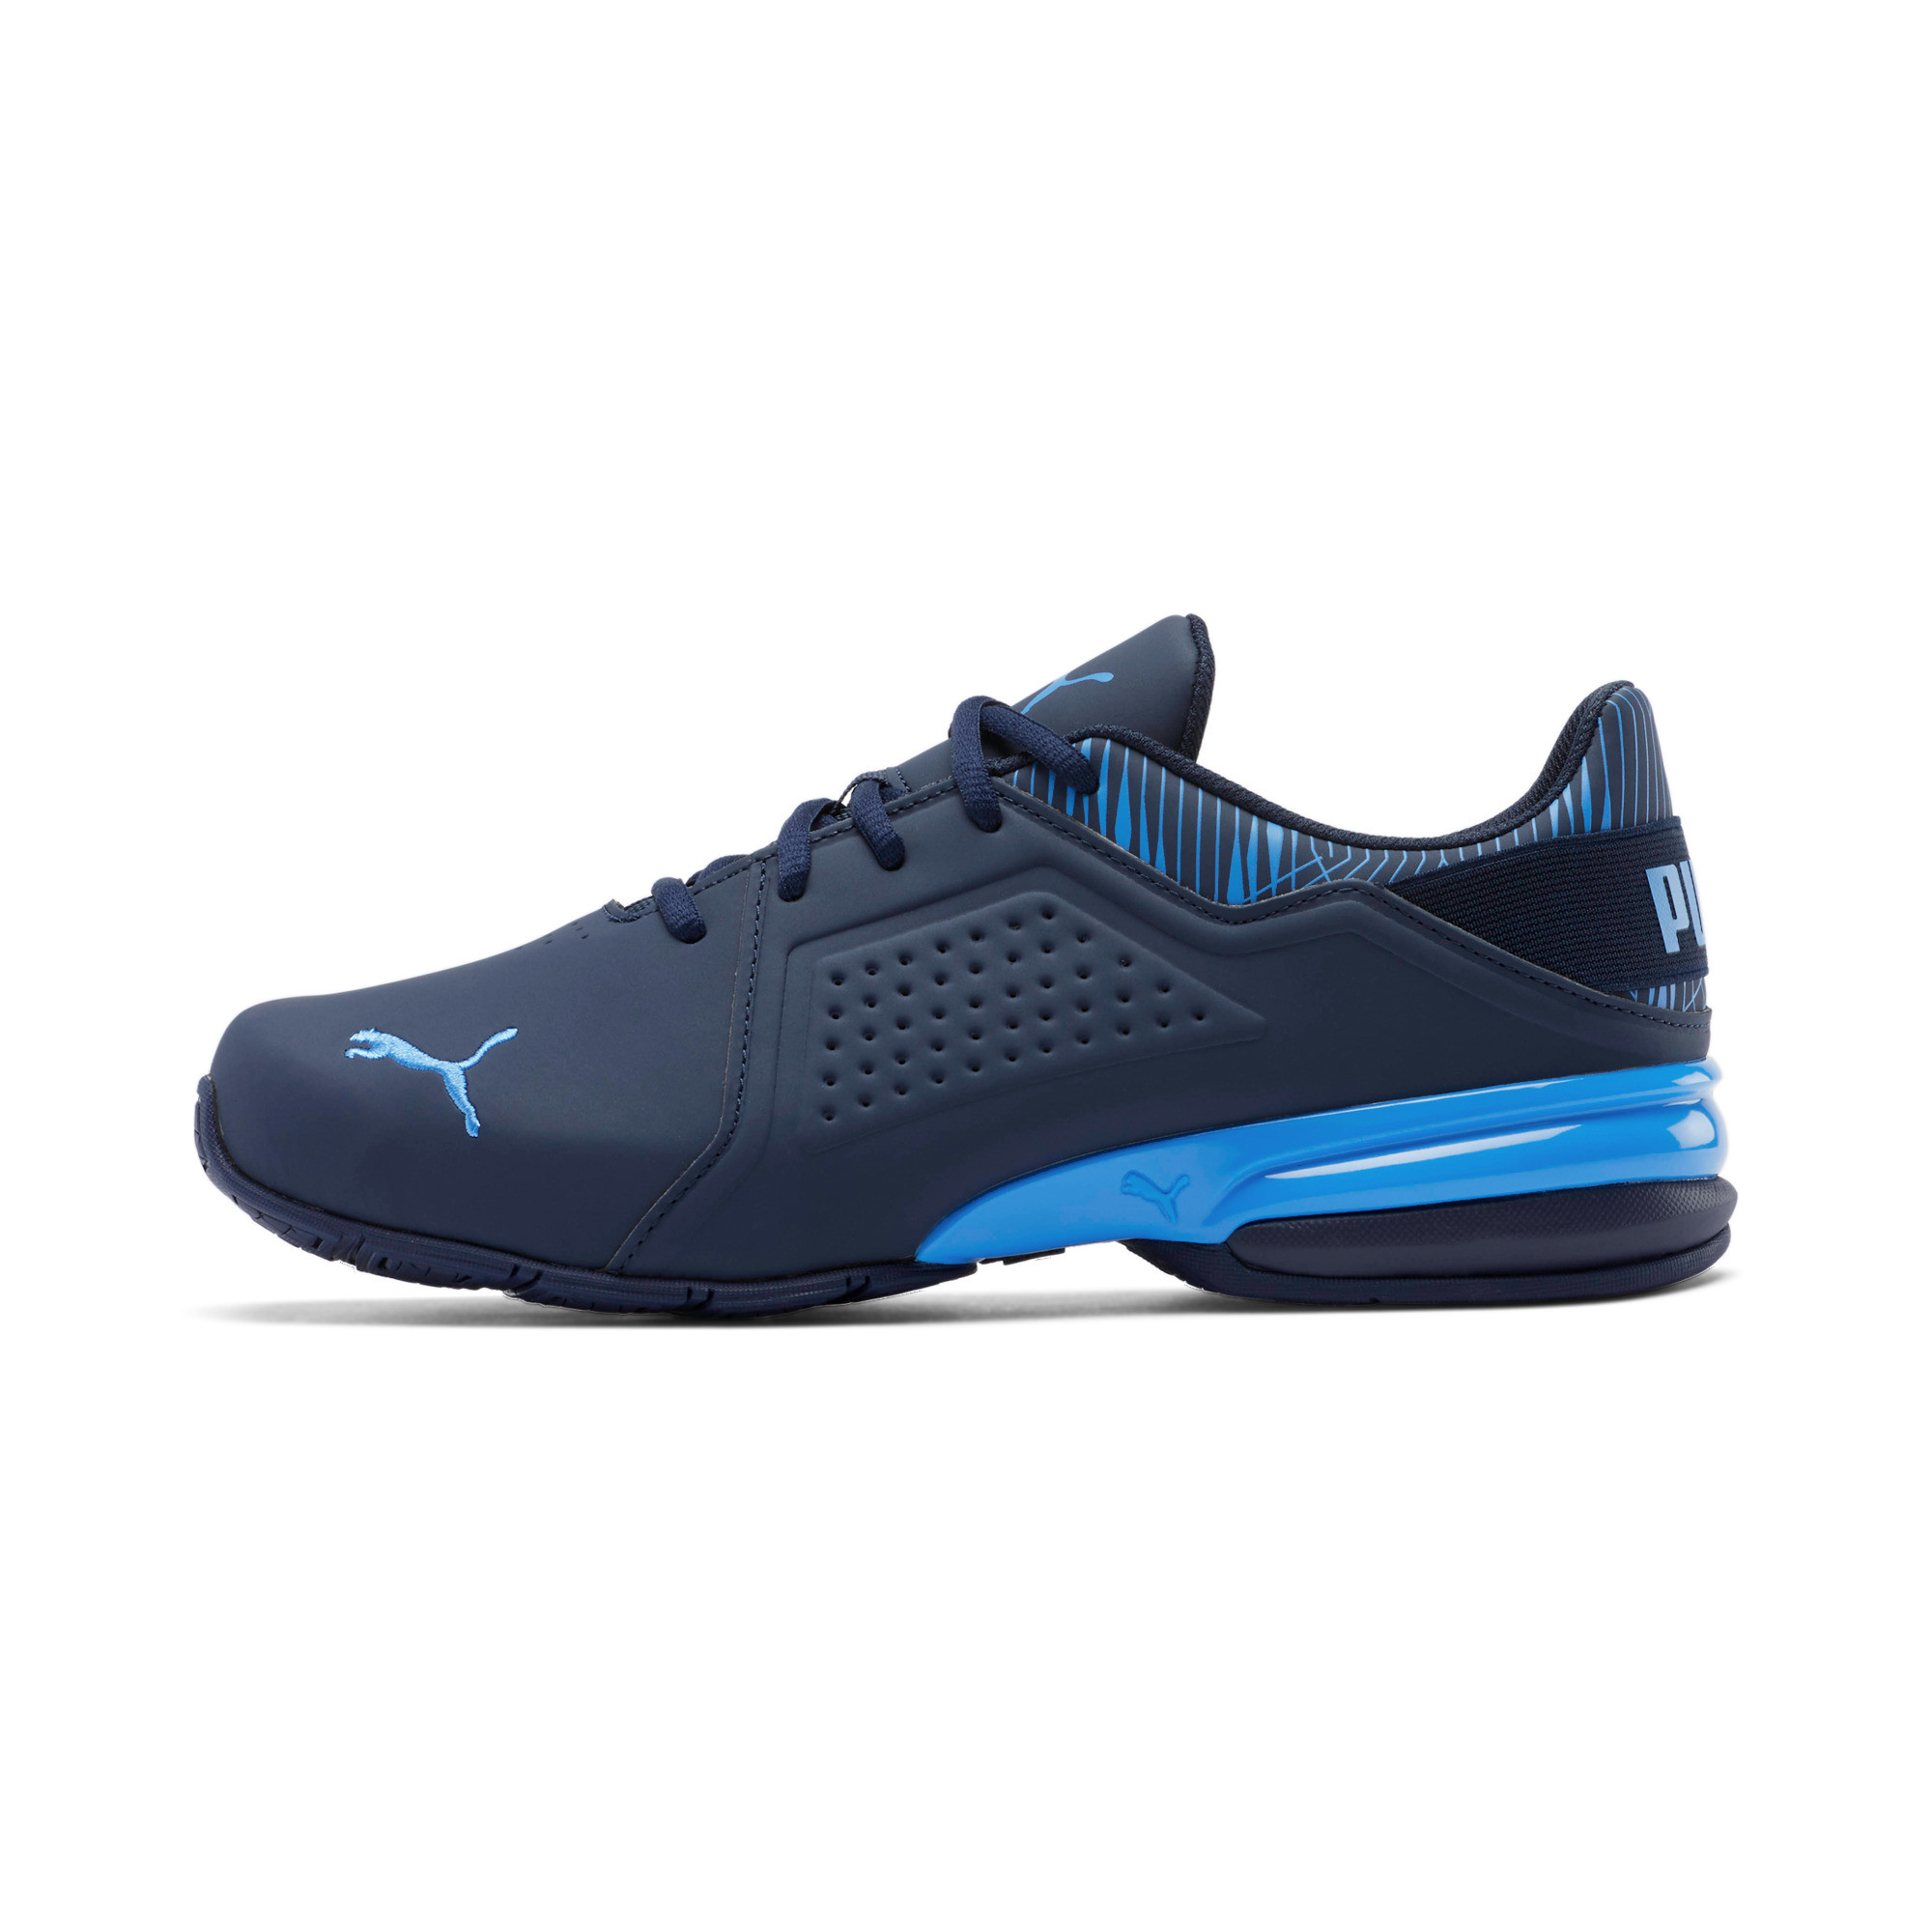 PUMA-Men-039-s-Viz-Runner-Graphic-Sneakers thumbnail 10